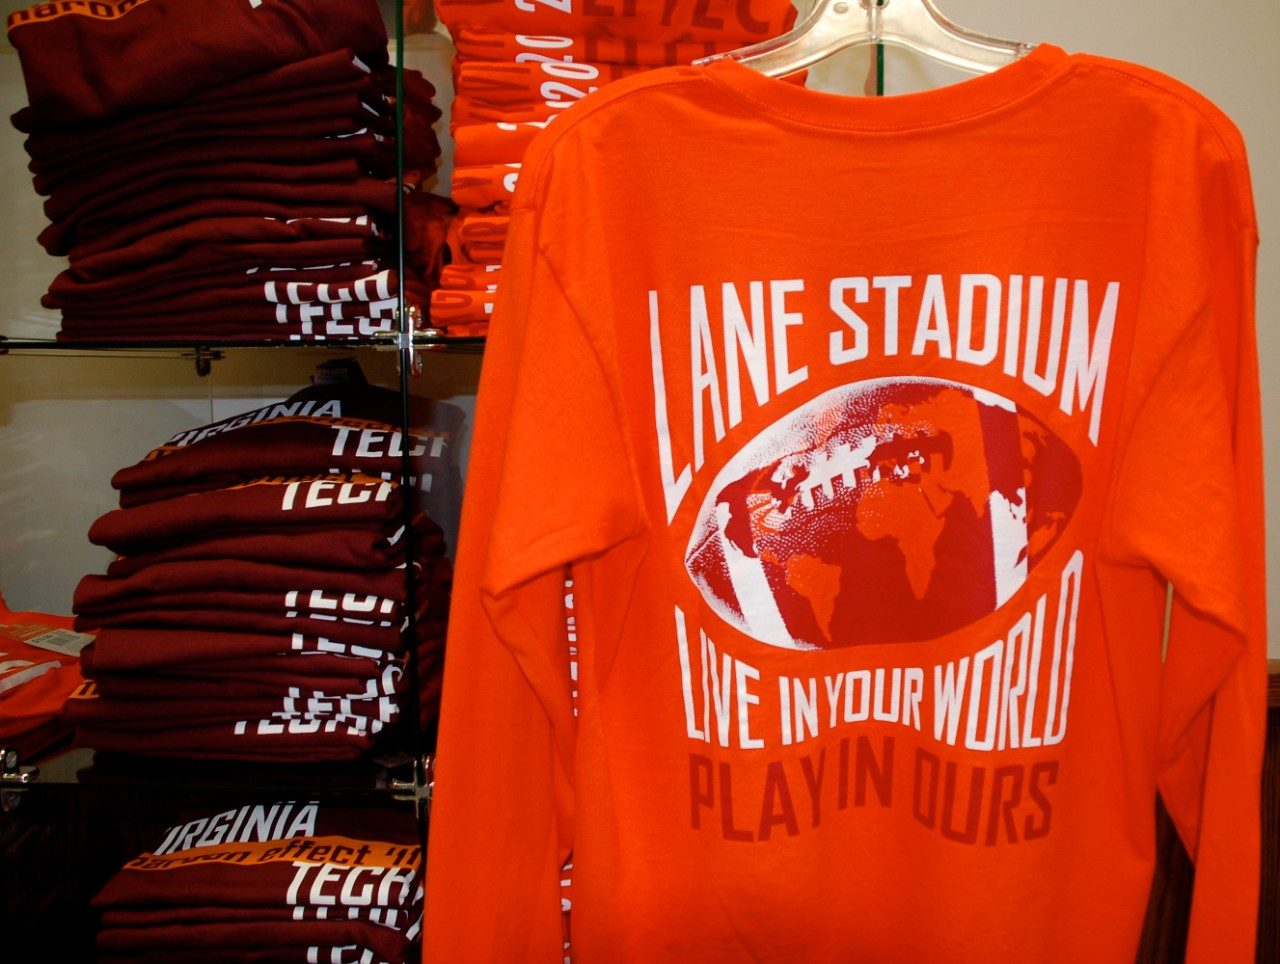 Hokie Effect shirts are on sale in advance of the Orange Effect game on Nov. 17 against North Carolina.